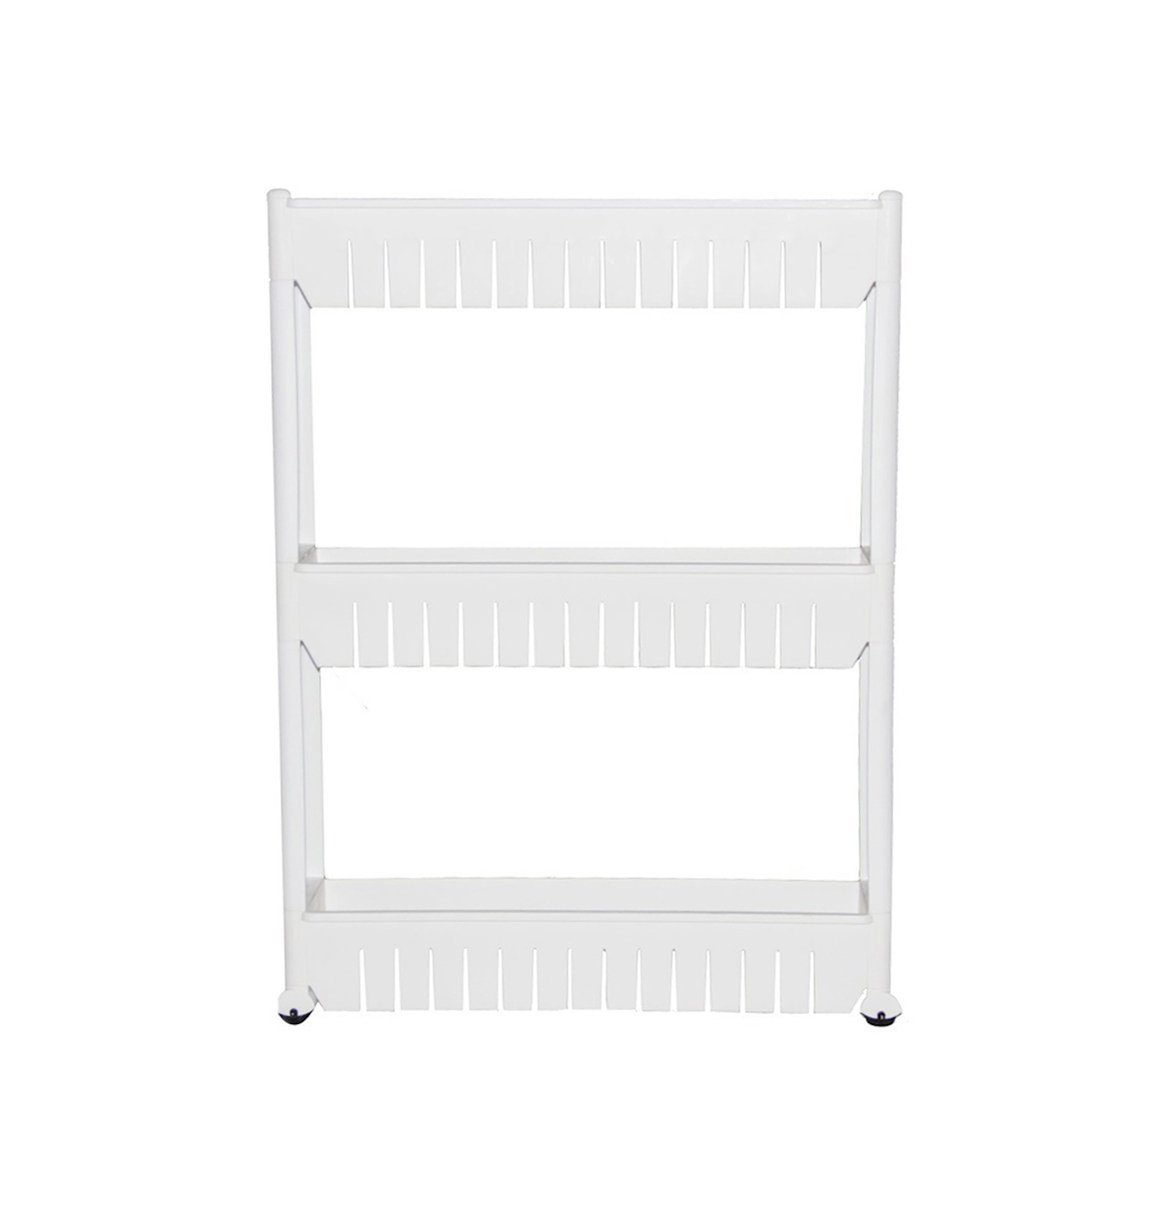 Honor Jojoba Slide Out Storage Tower 3 Tier Kitchen Storage Rack Bathroom Shelf with Wheels White XHM